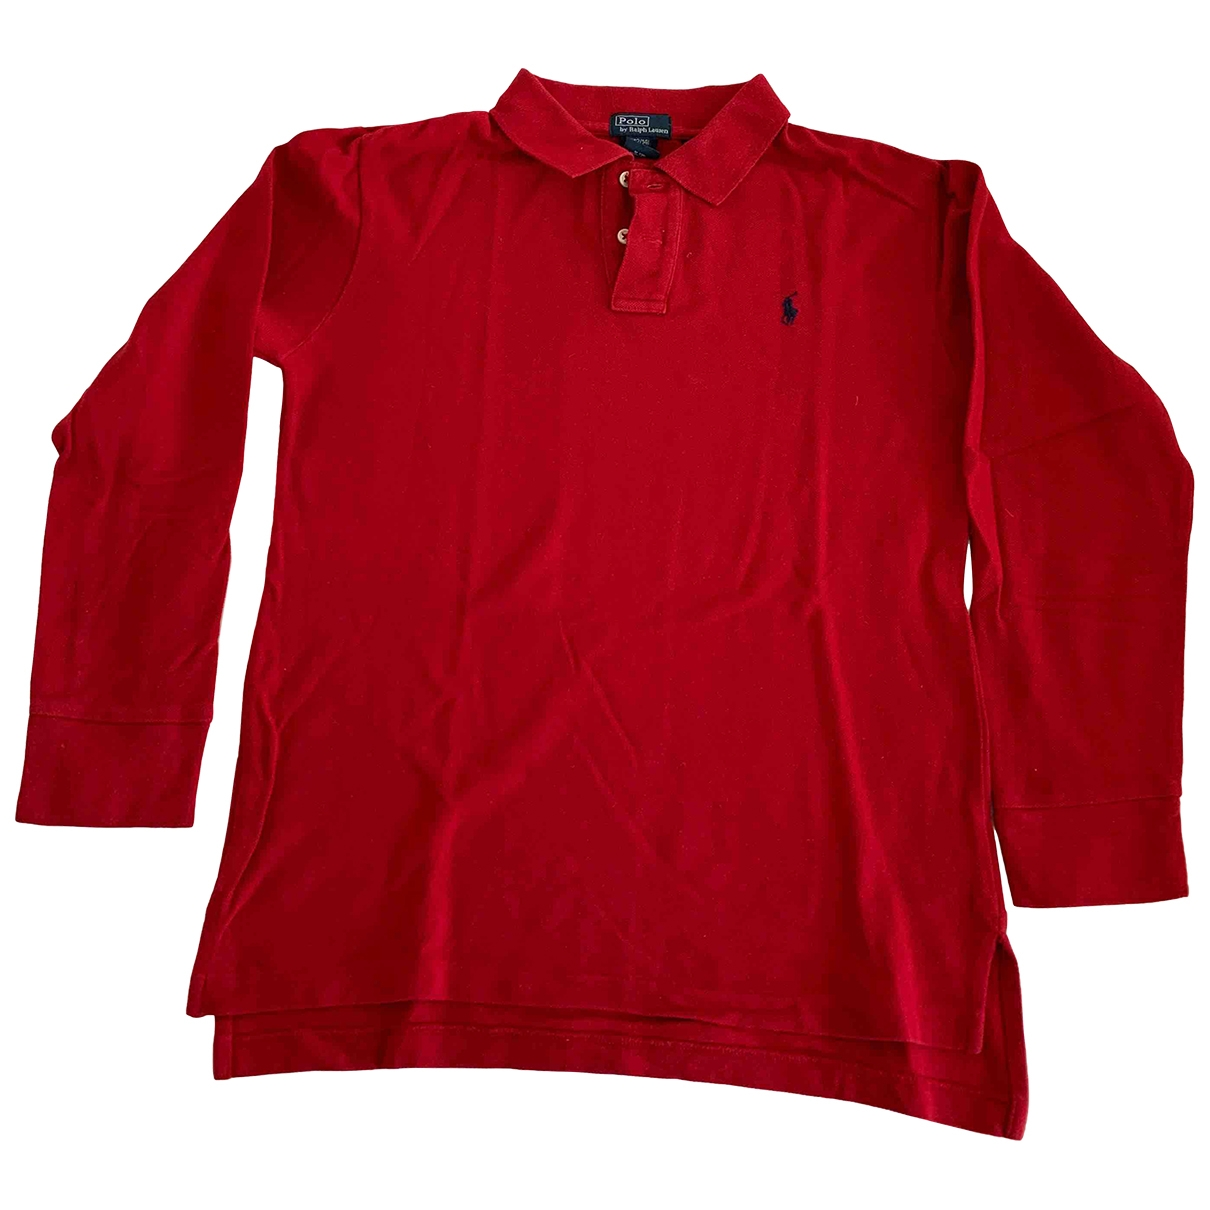 Polo Ralph Lauren \N Red Cotton  top for Kids 14 years - S FR